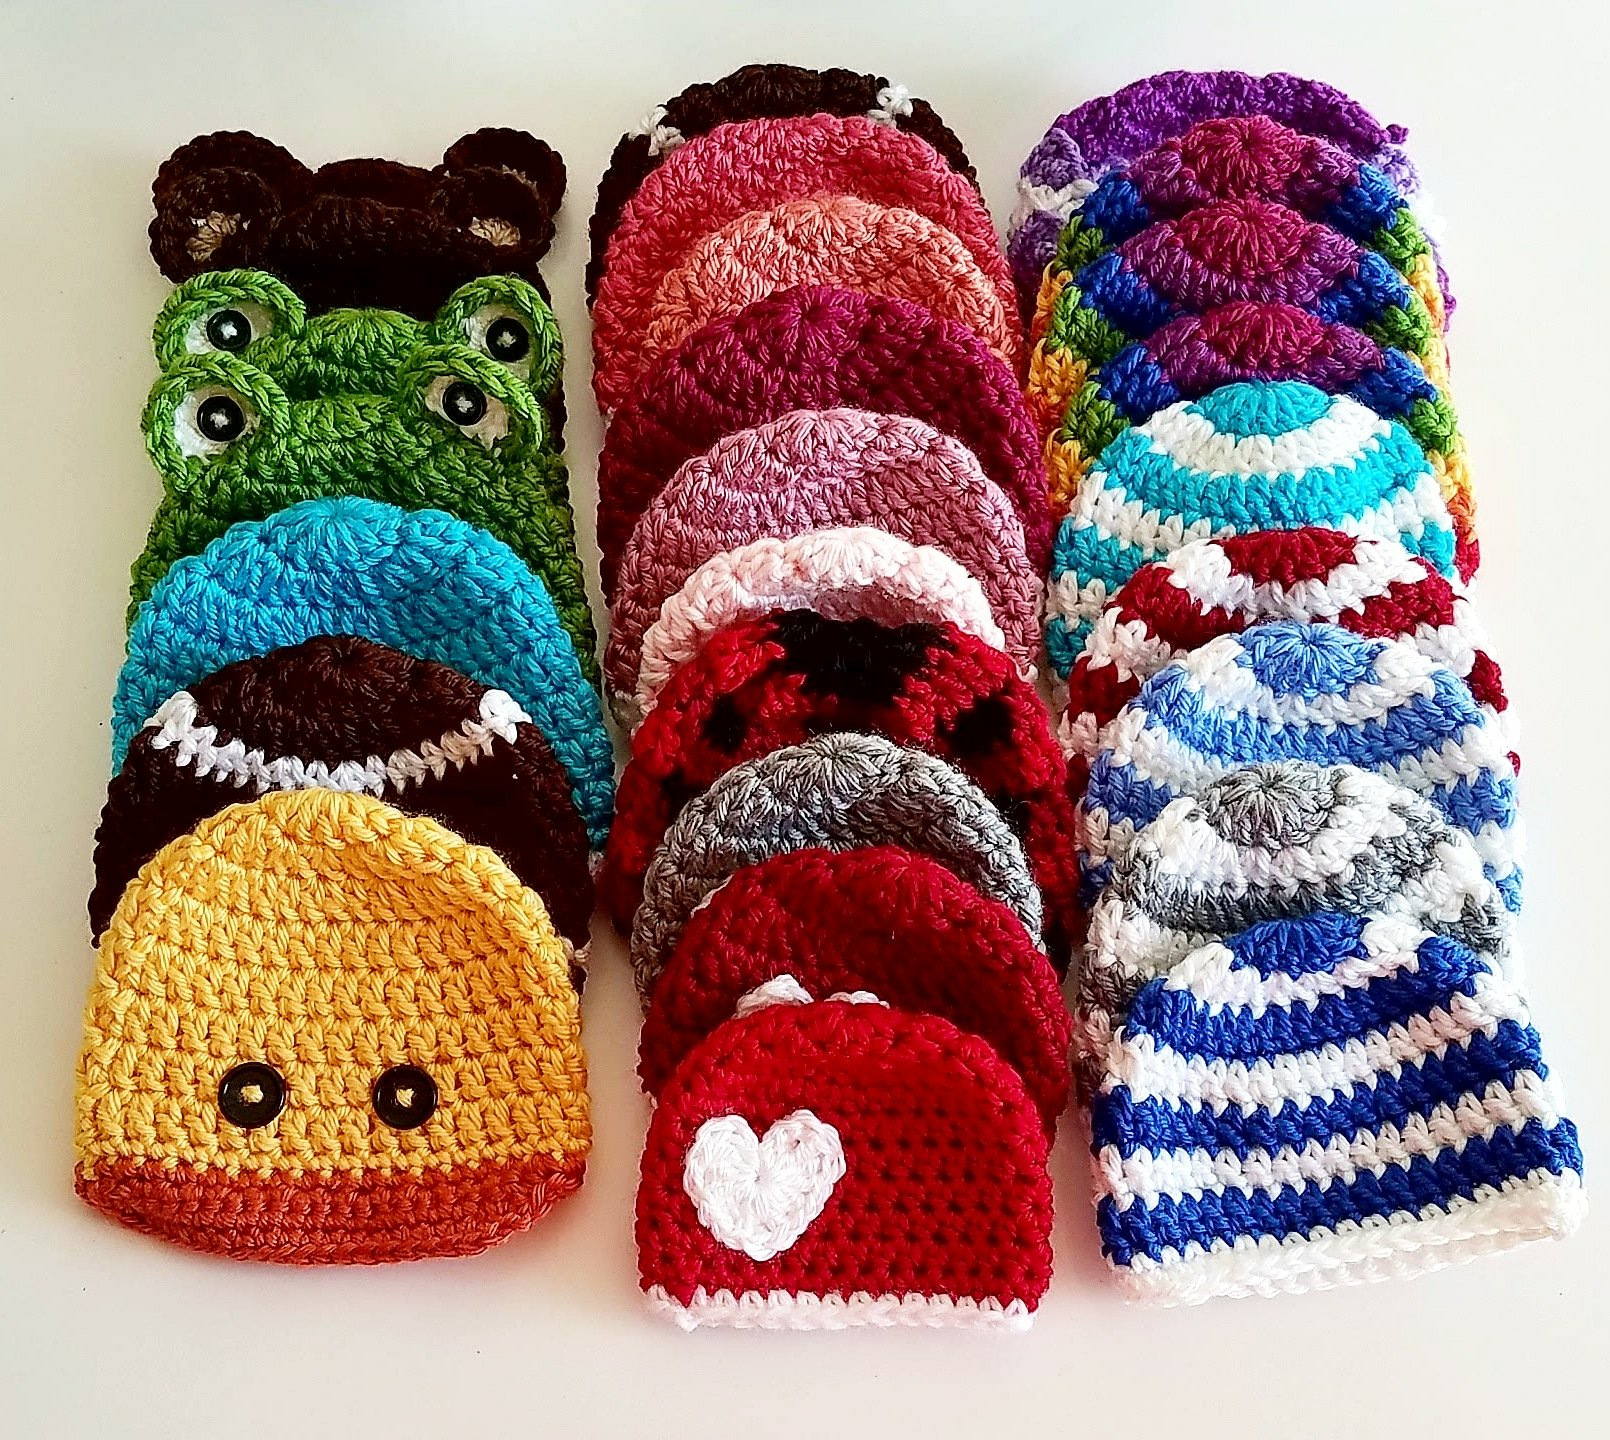 Preemie Crochet Hats Day 1: The Basic Beanie